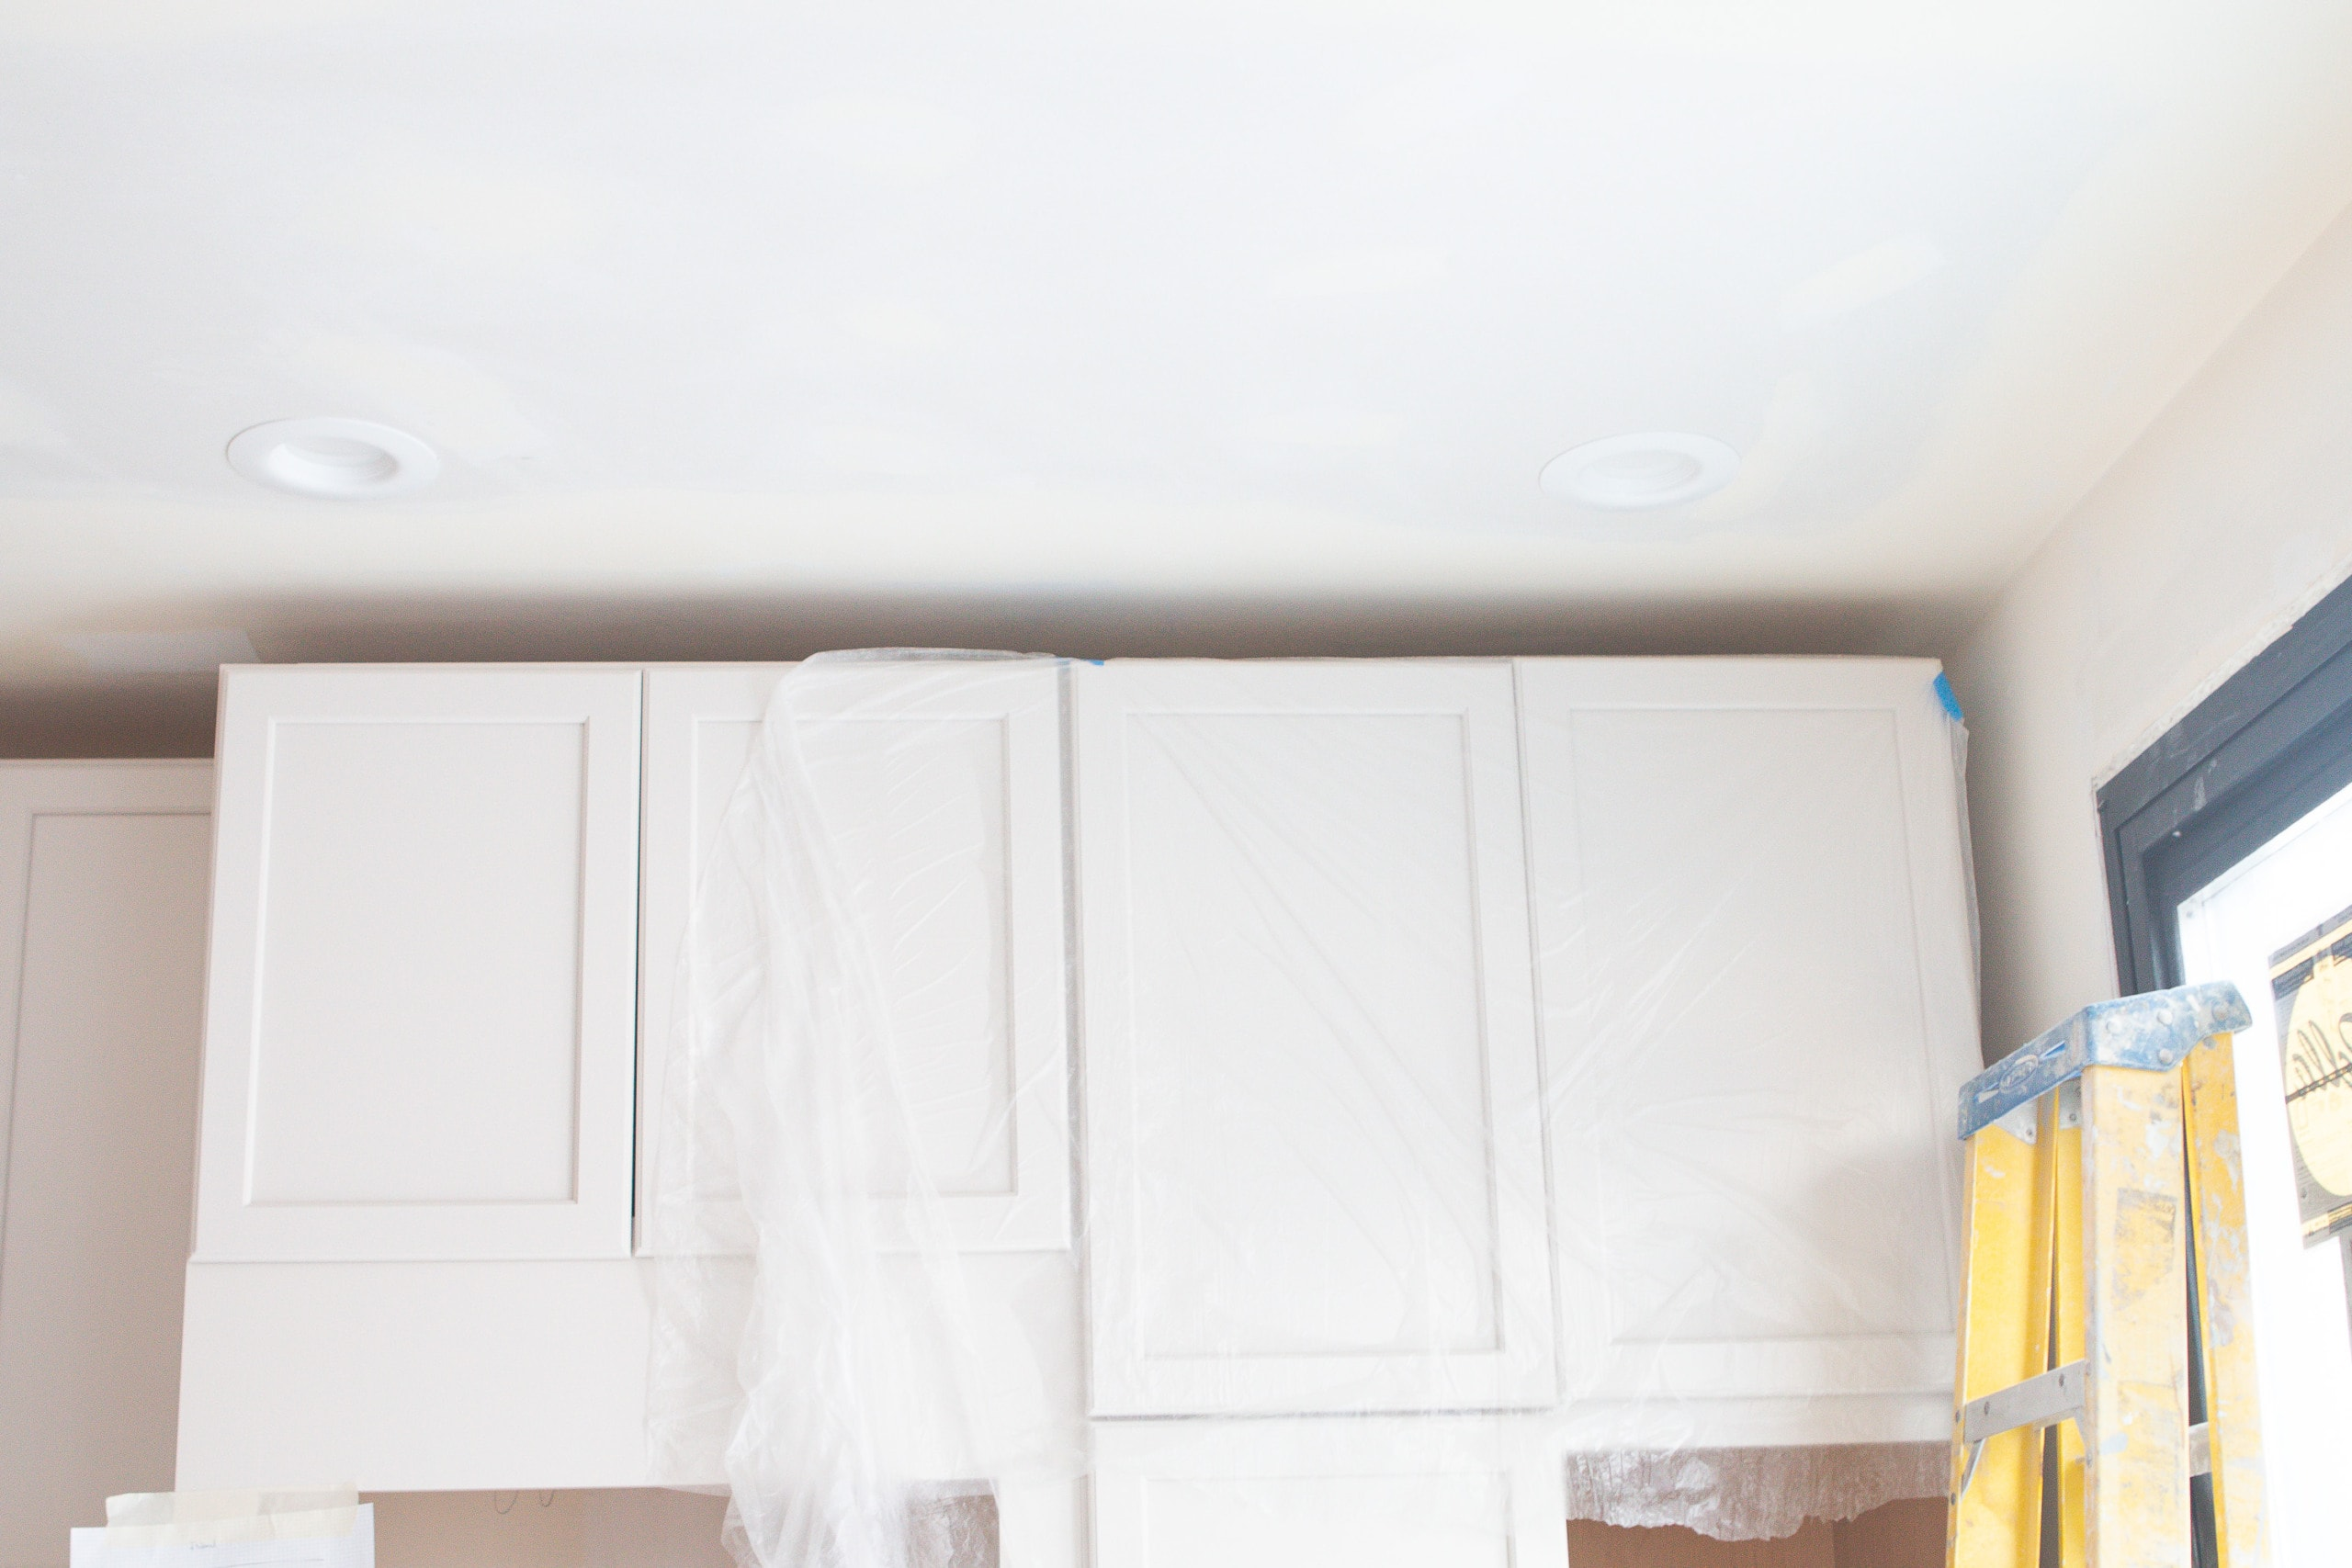 Gap between ceiling and cabinets